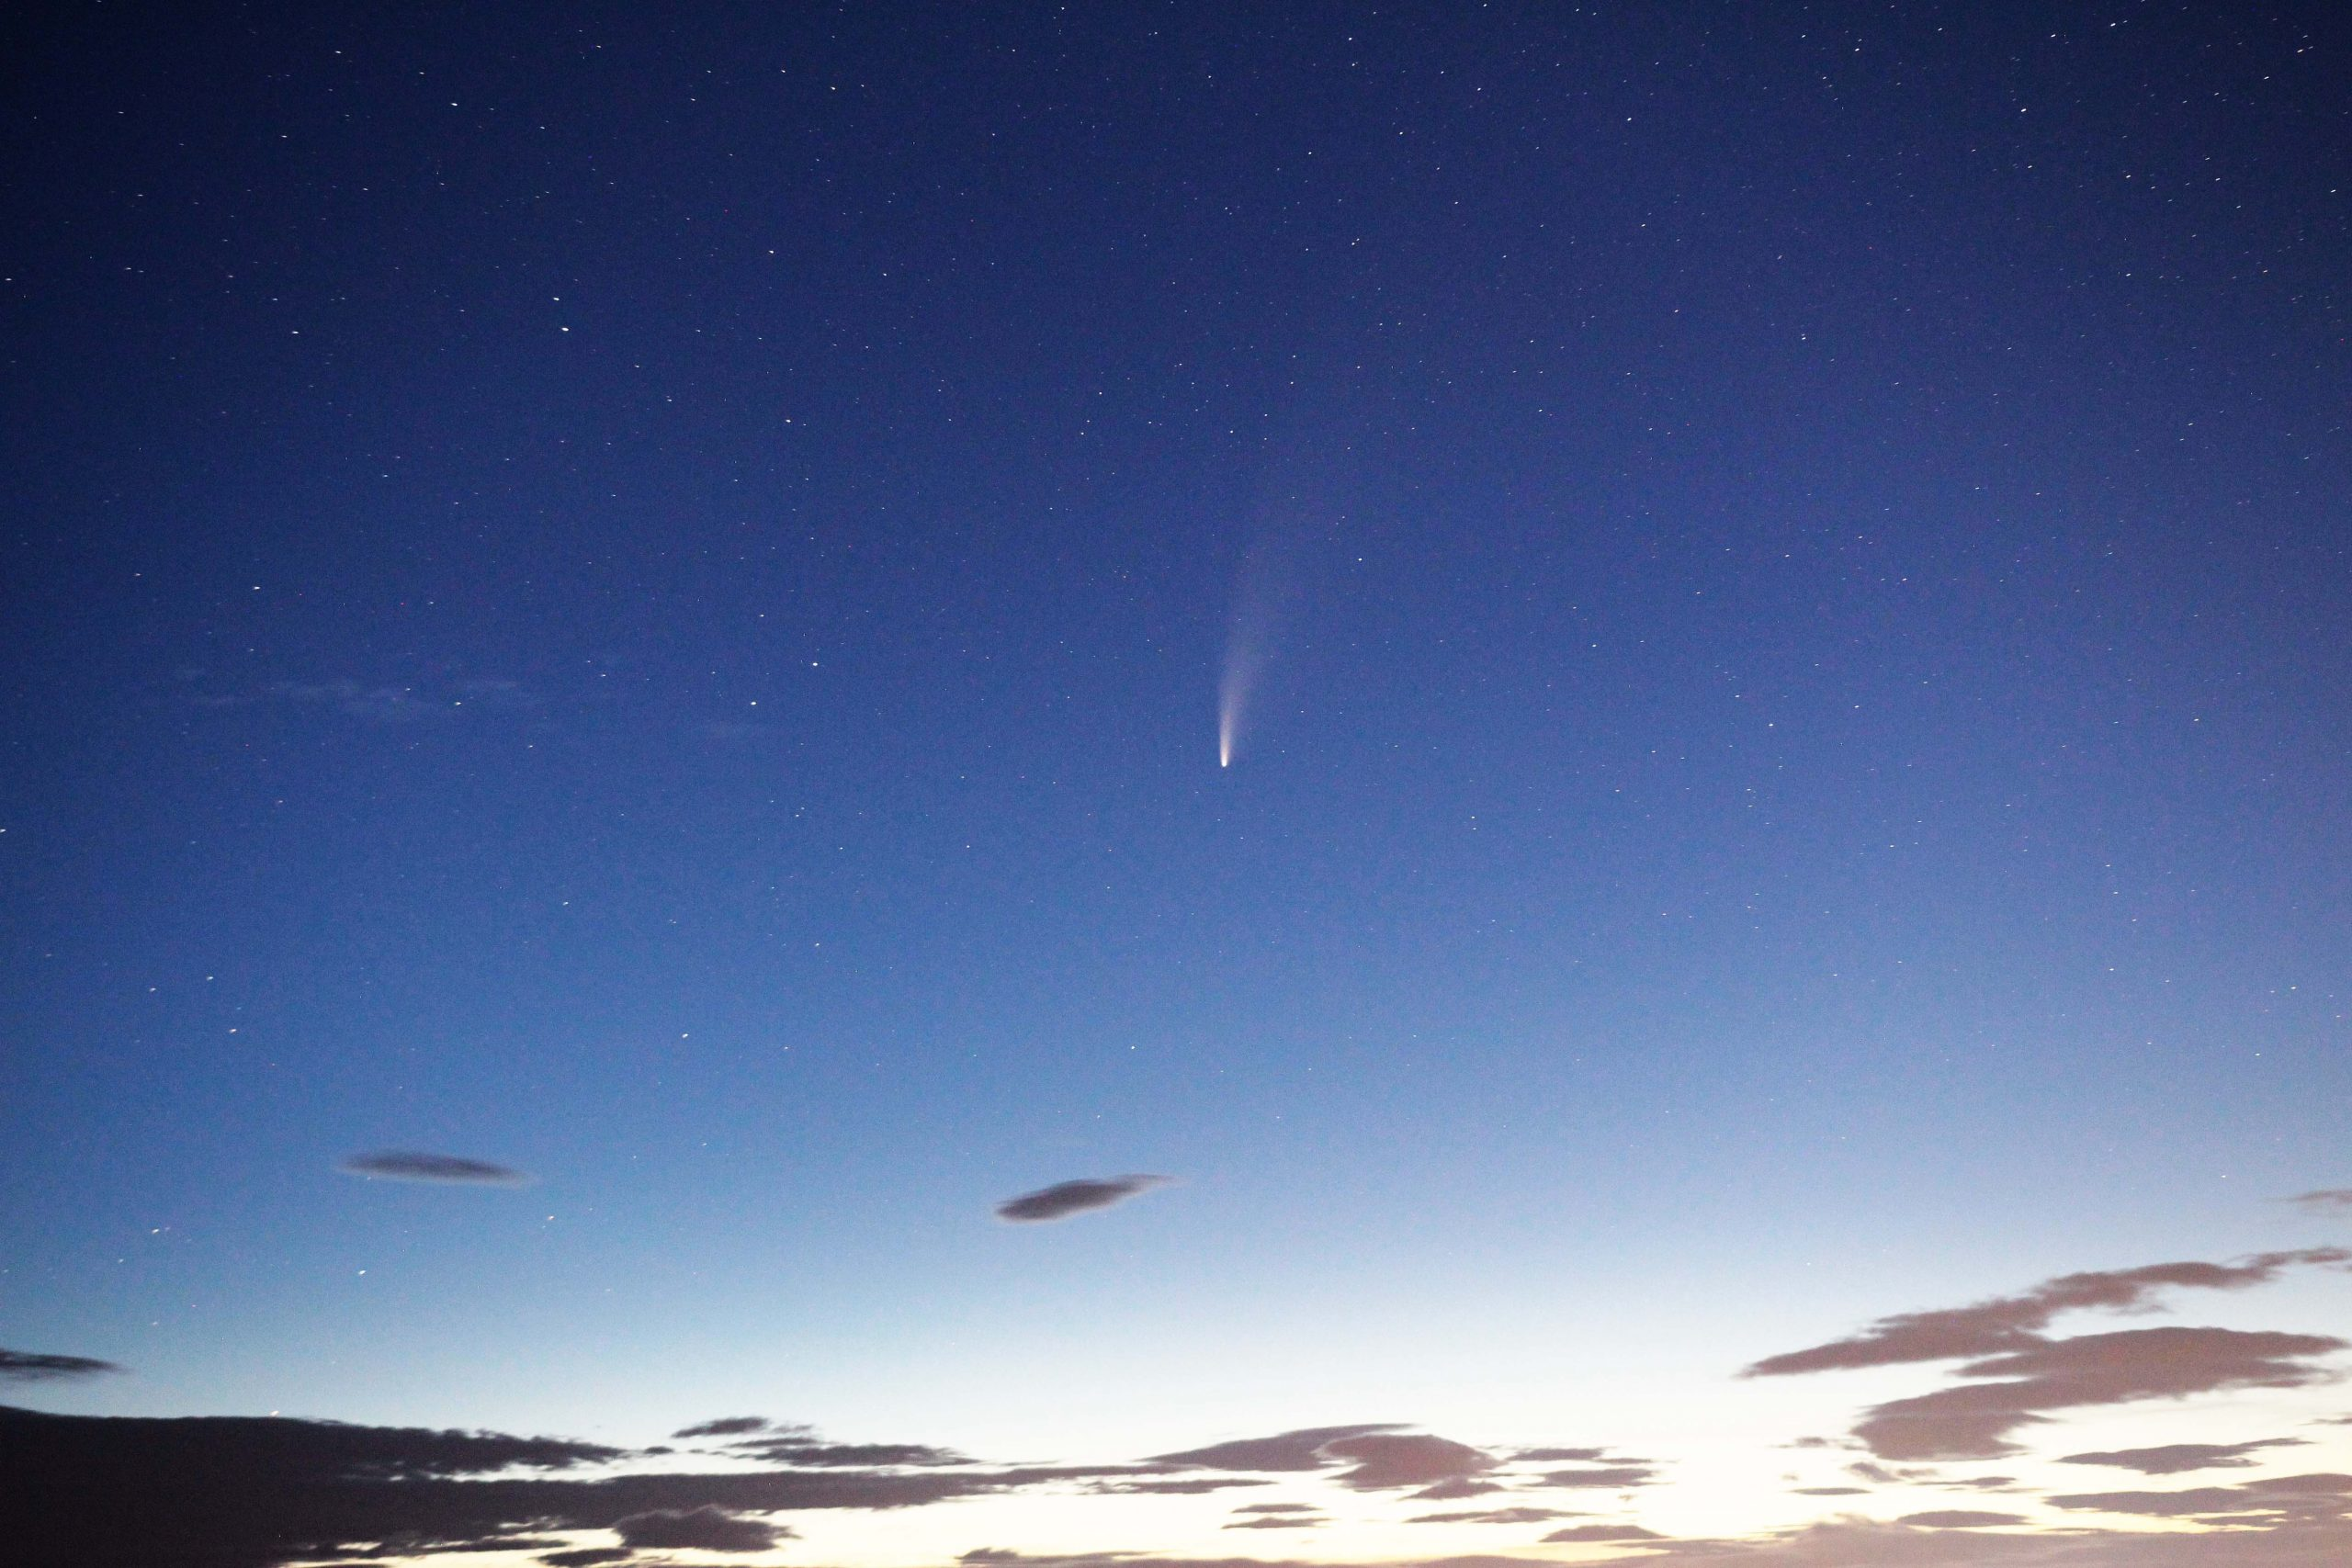 Neowise comet on a blue sky